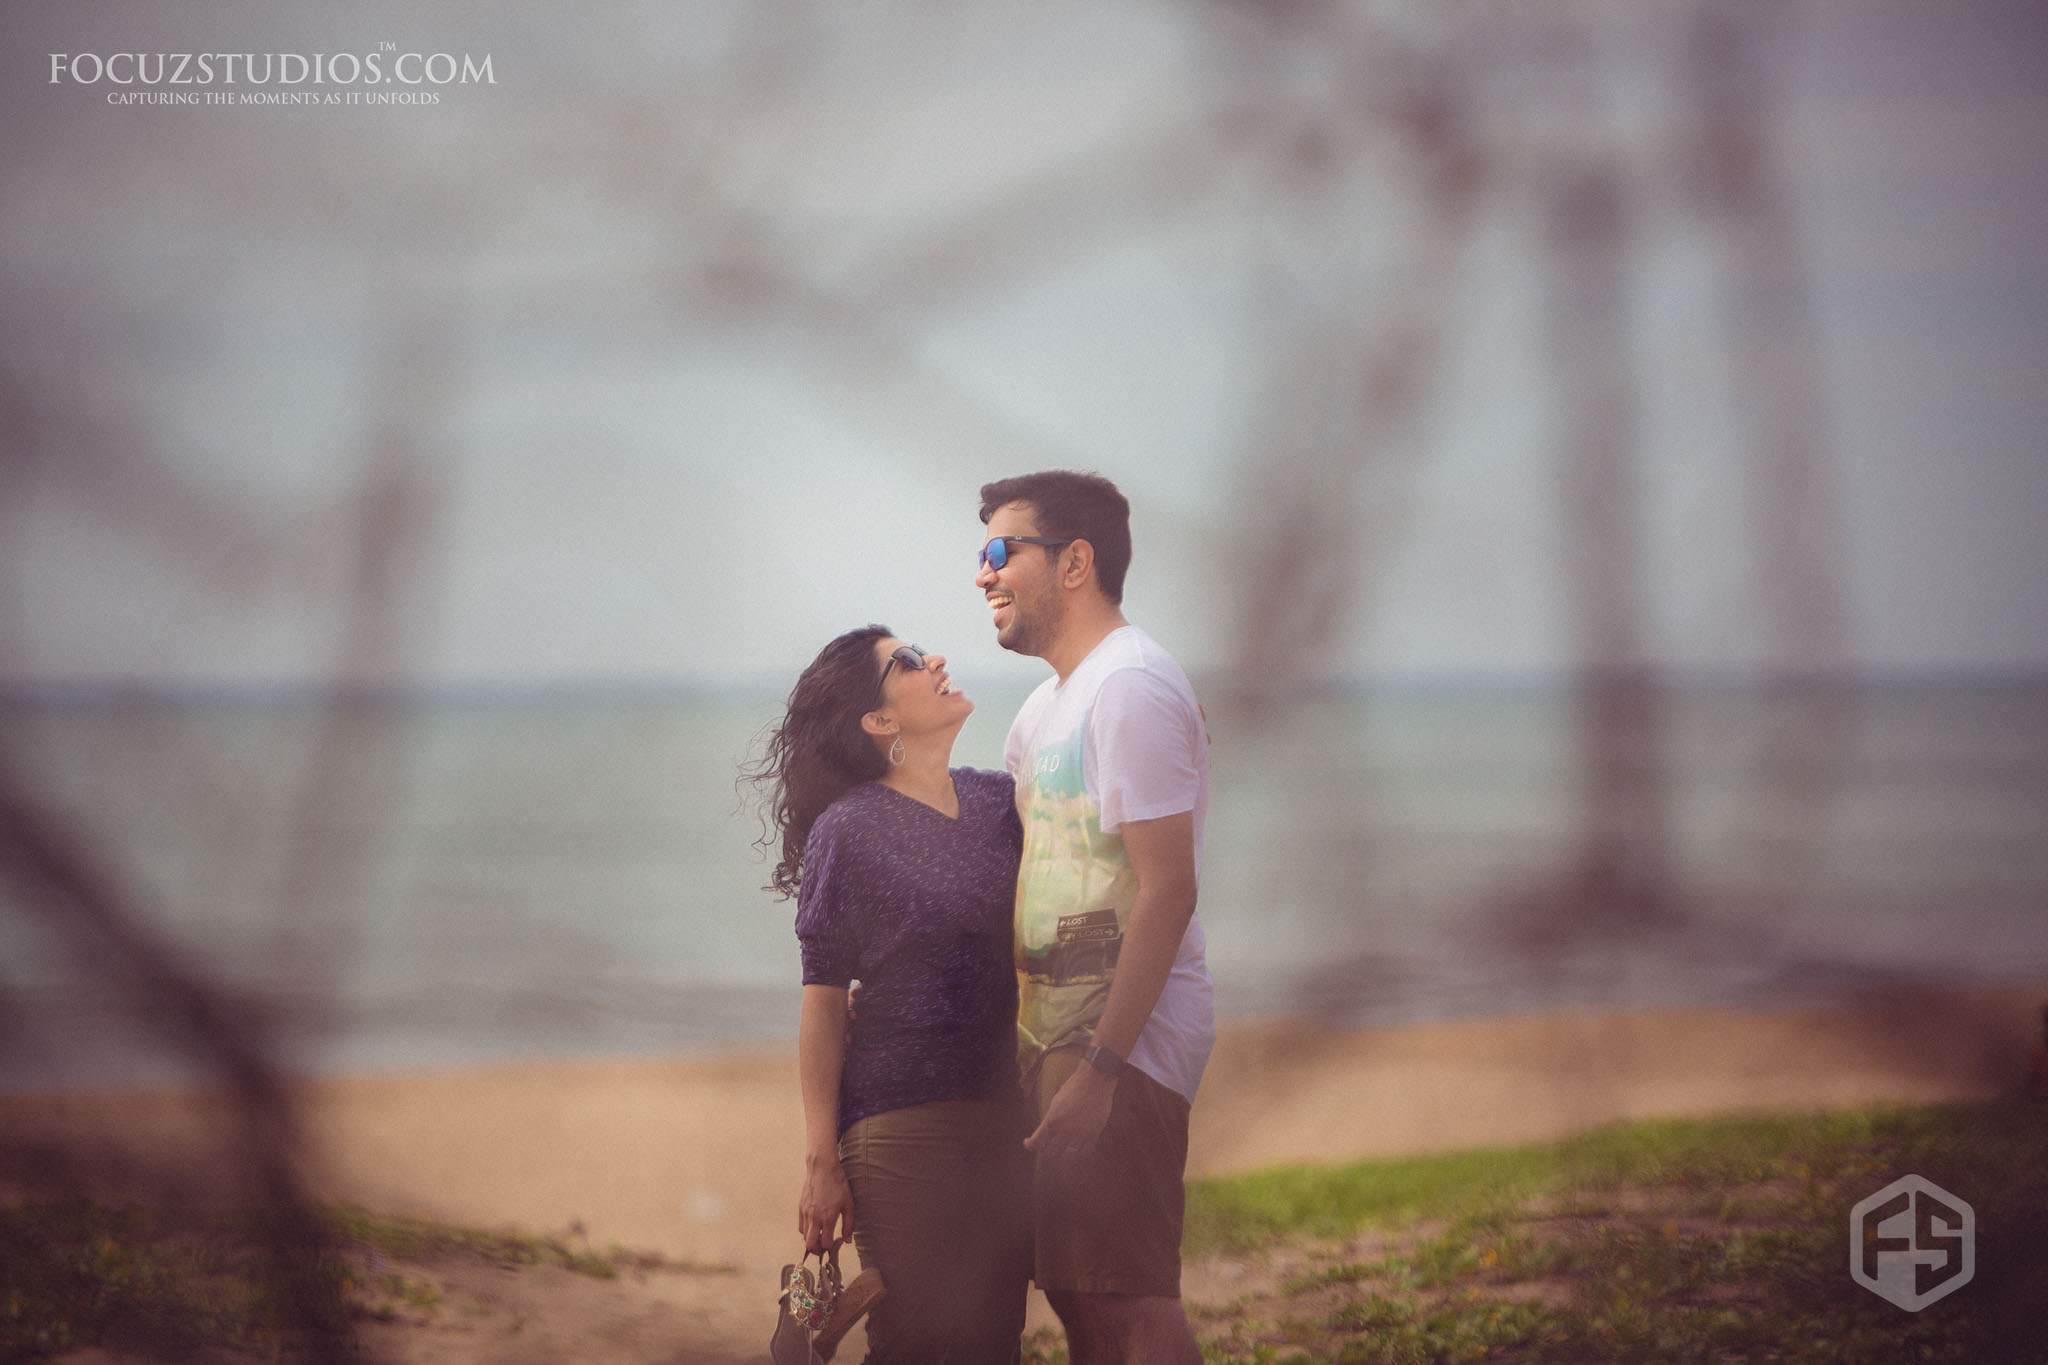 pre-wedding-photoshooting-focuz-studios4